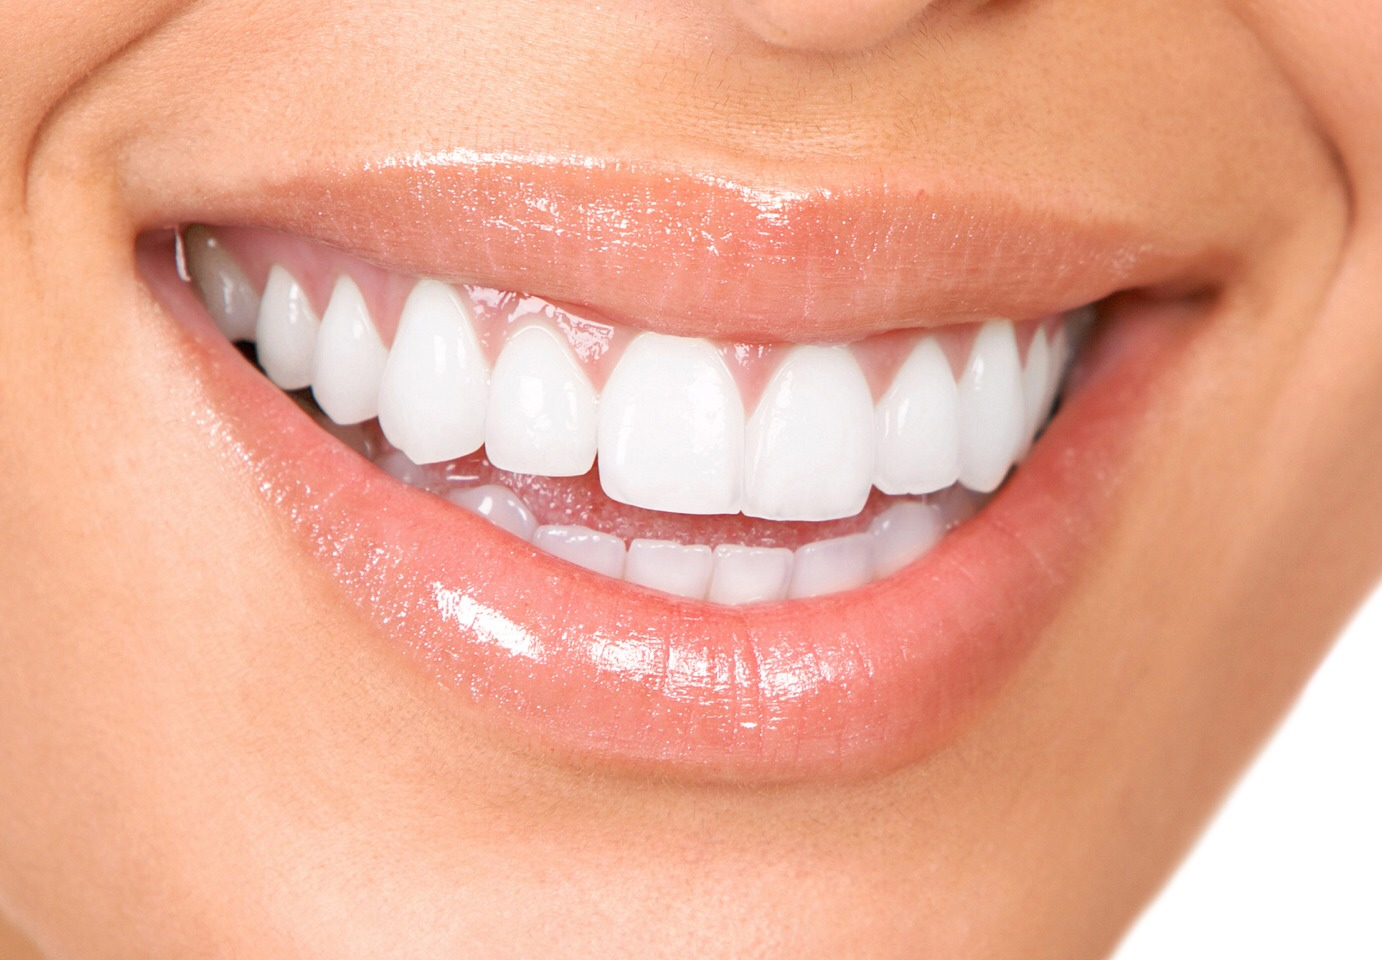 4) TAKE CARE OF YOUR TEETH this one goes without saying. The younger you start caring for your teeth the better.